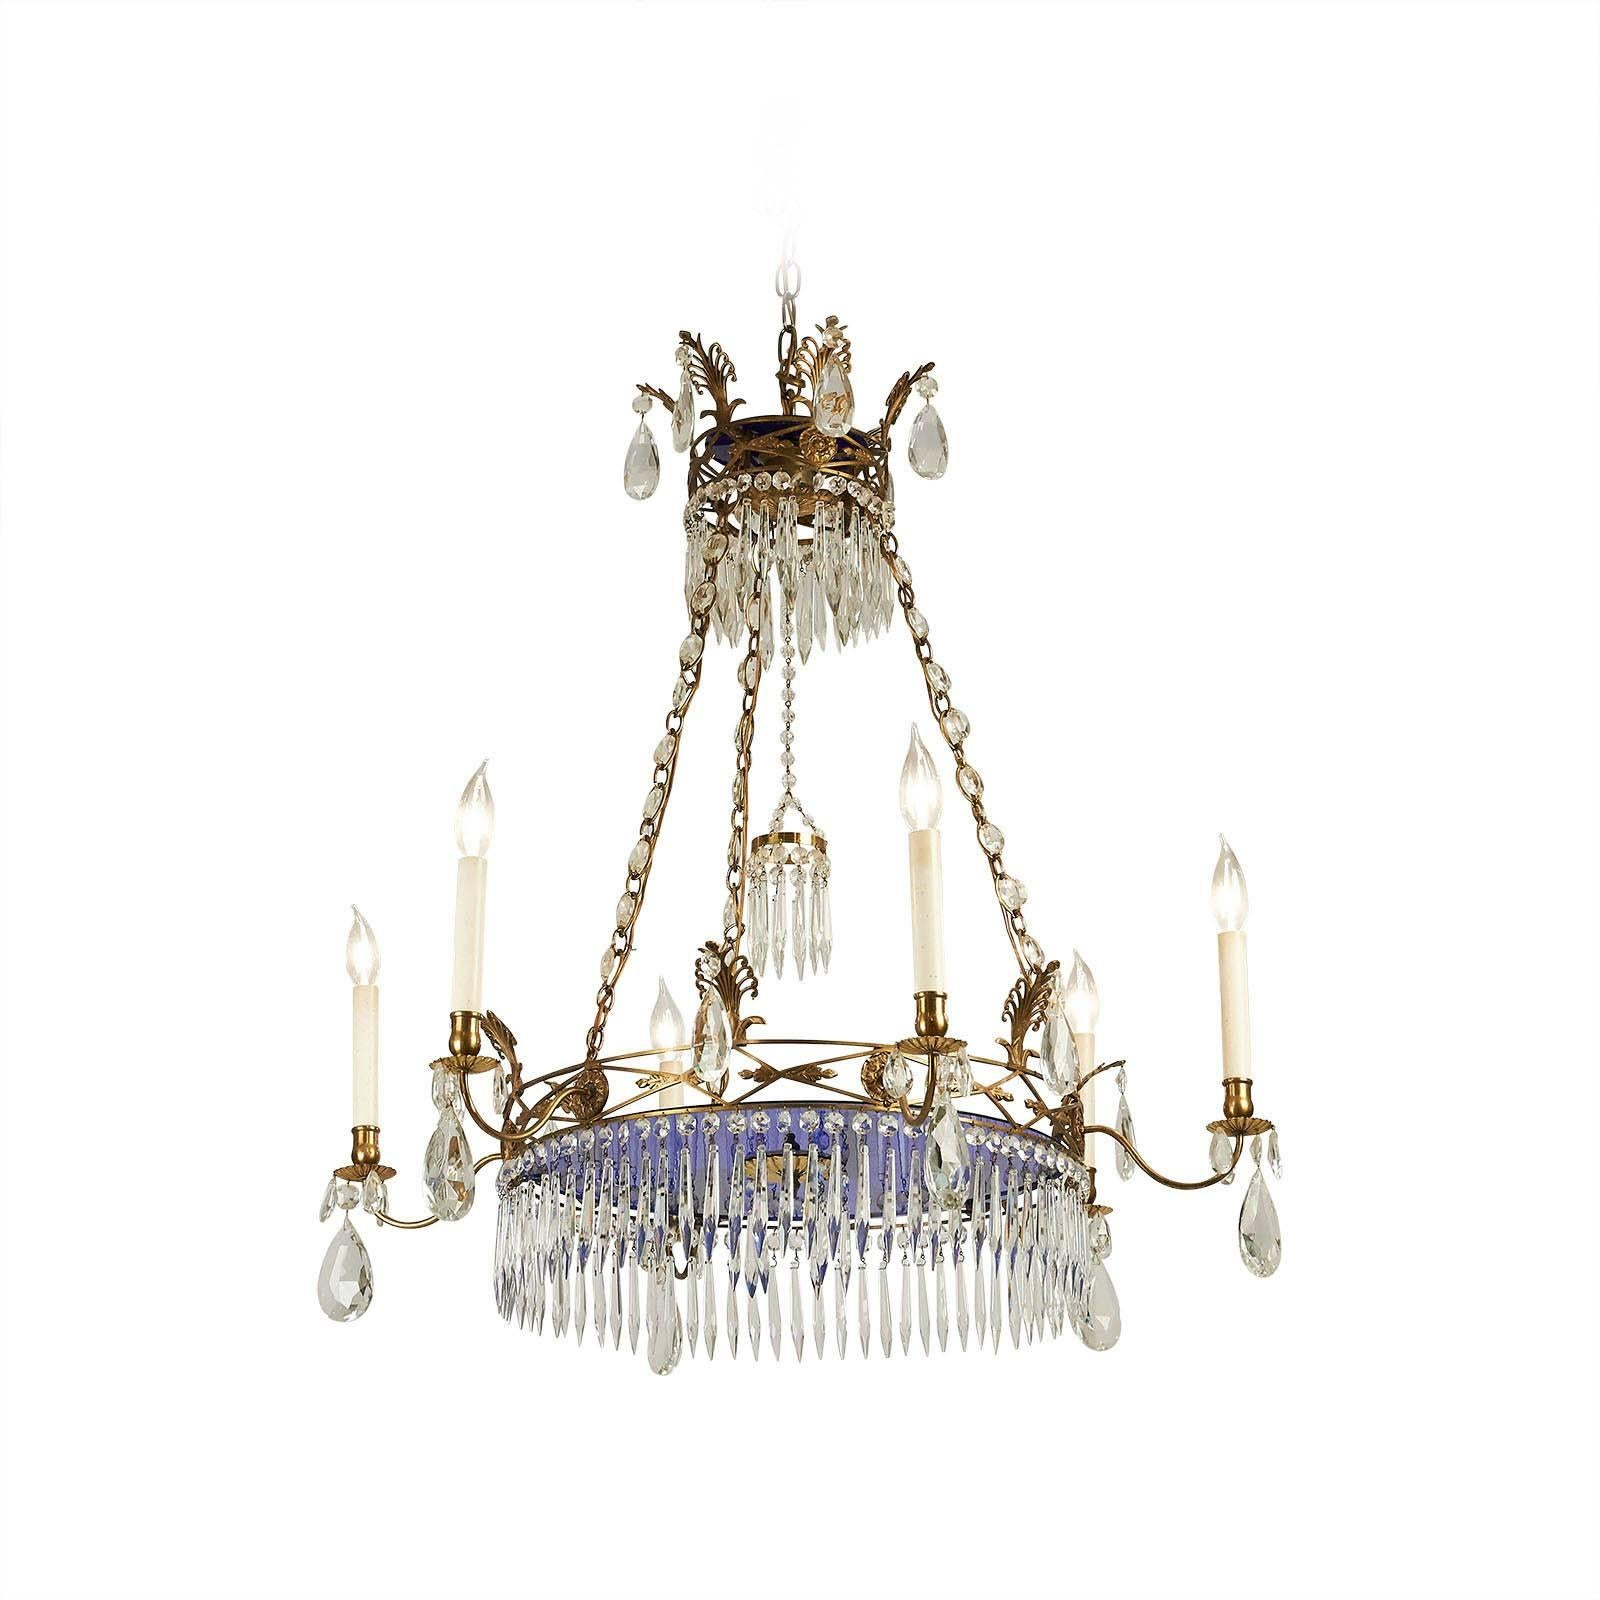 Russian Crystal Chandelier circa 1880 at